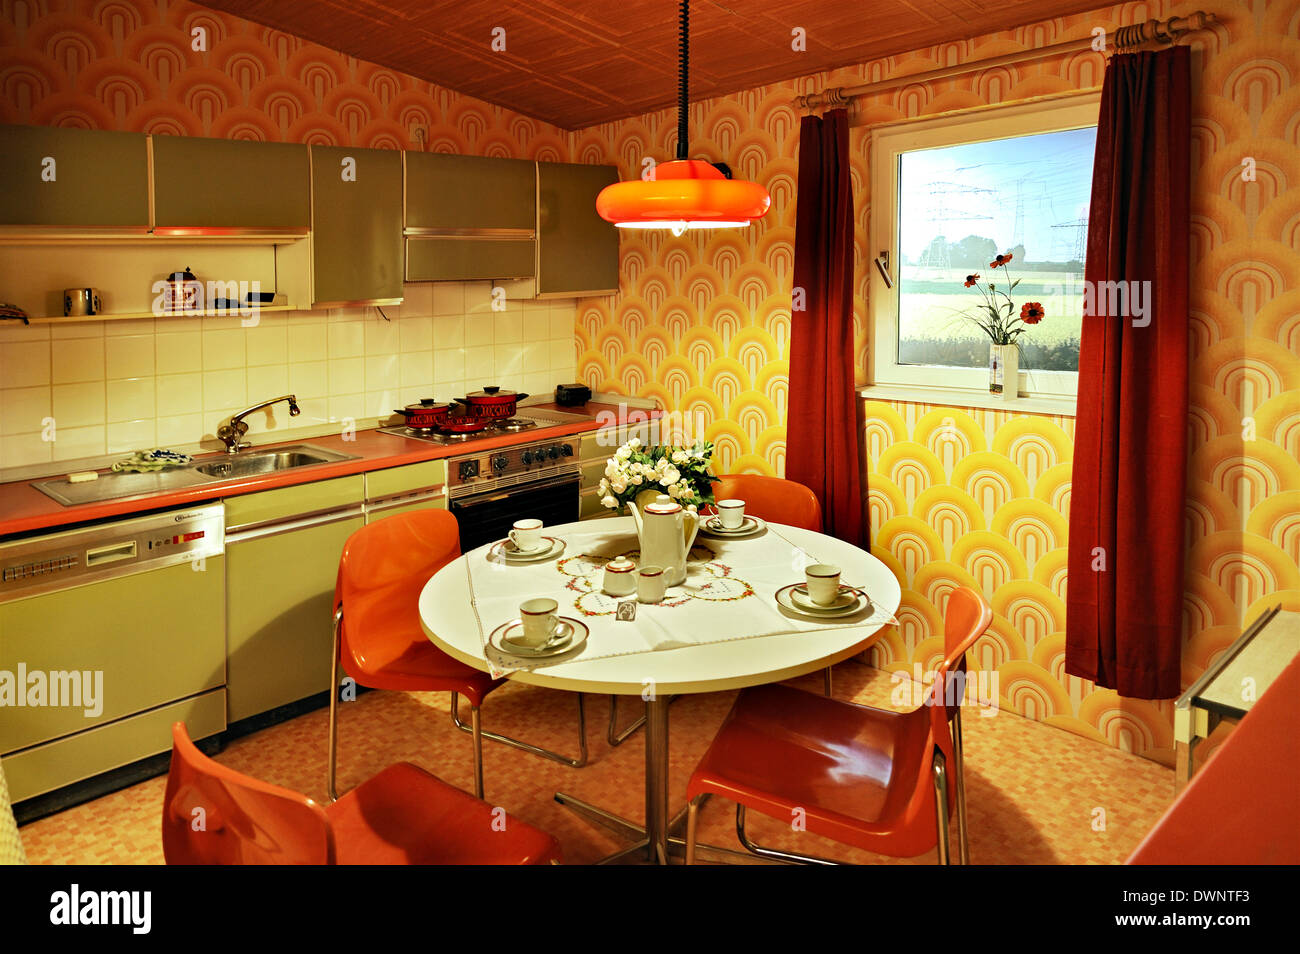 1960s Interior Design Stockfotos & 1960s Interior Design Bilder - Alamy